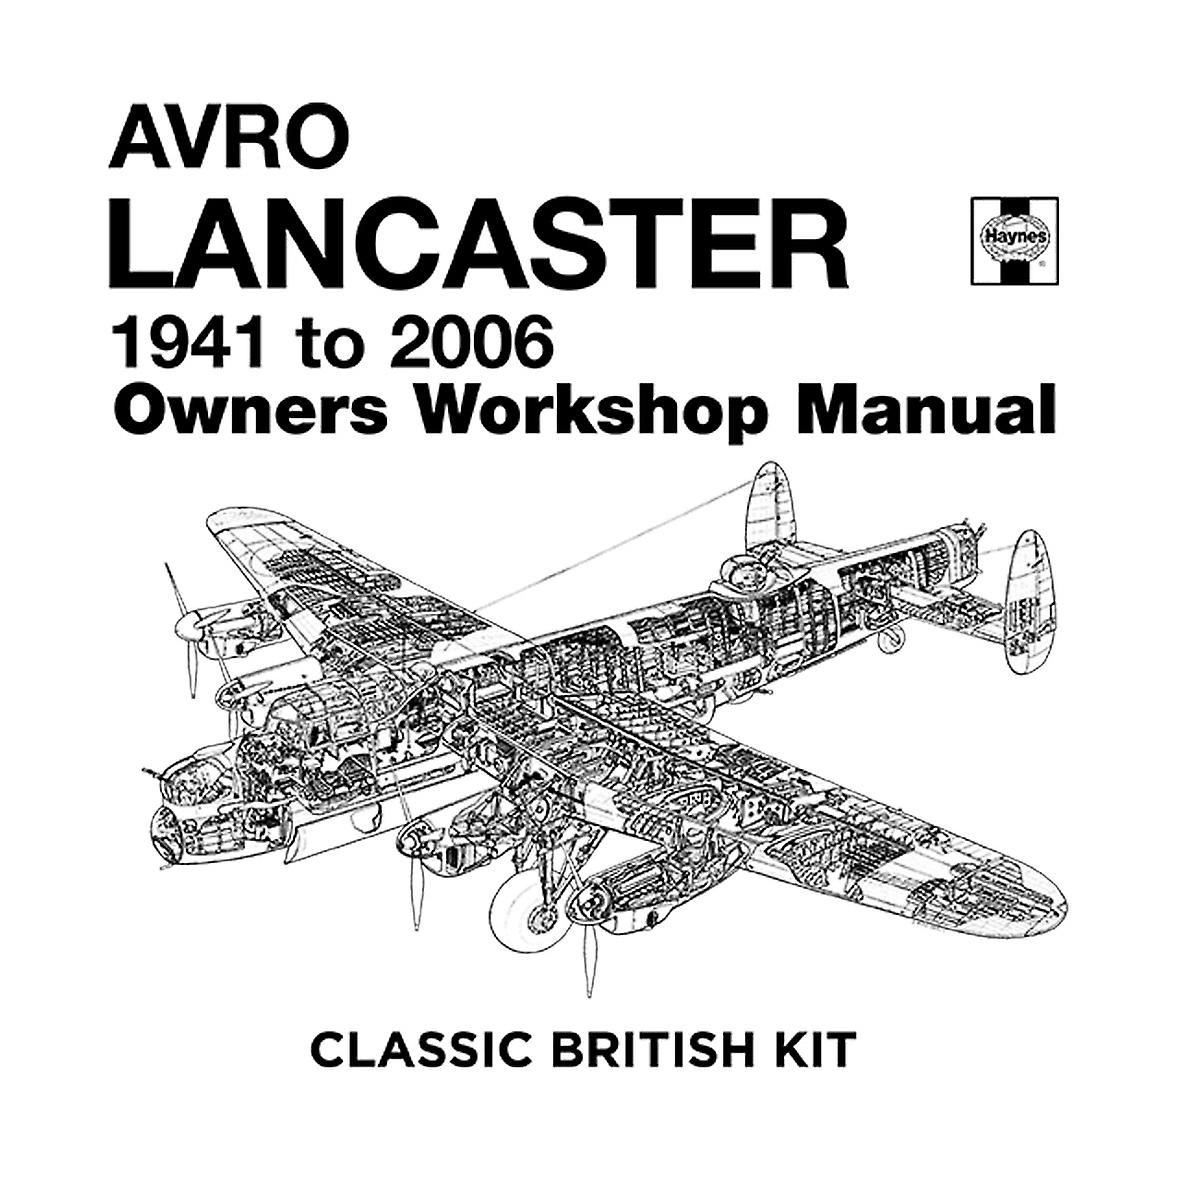 Haynes Owners Workshop Manual Arvo Lancaster 1941 to 2006